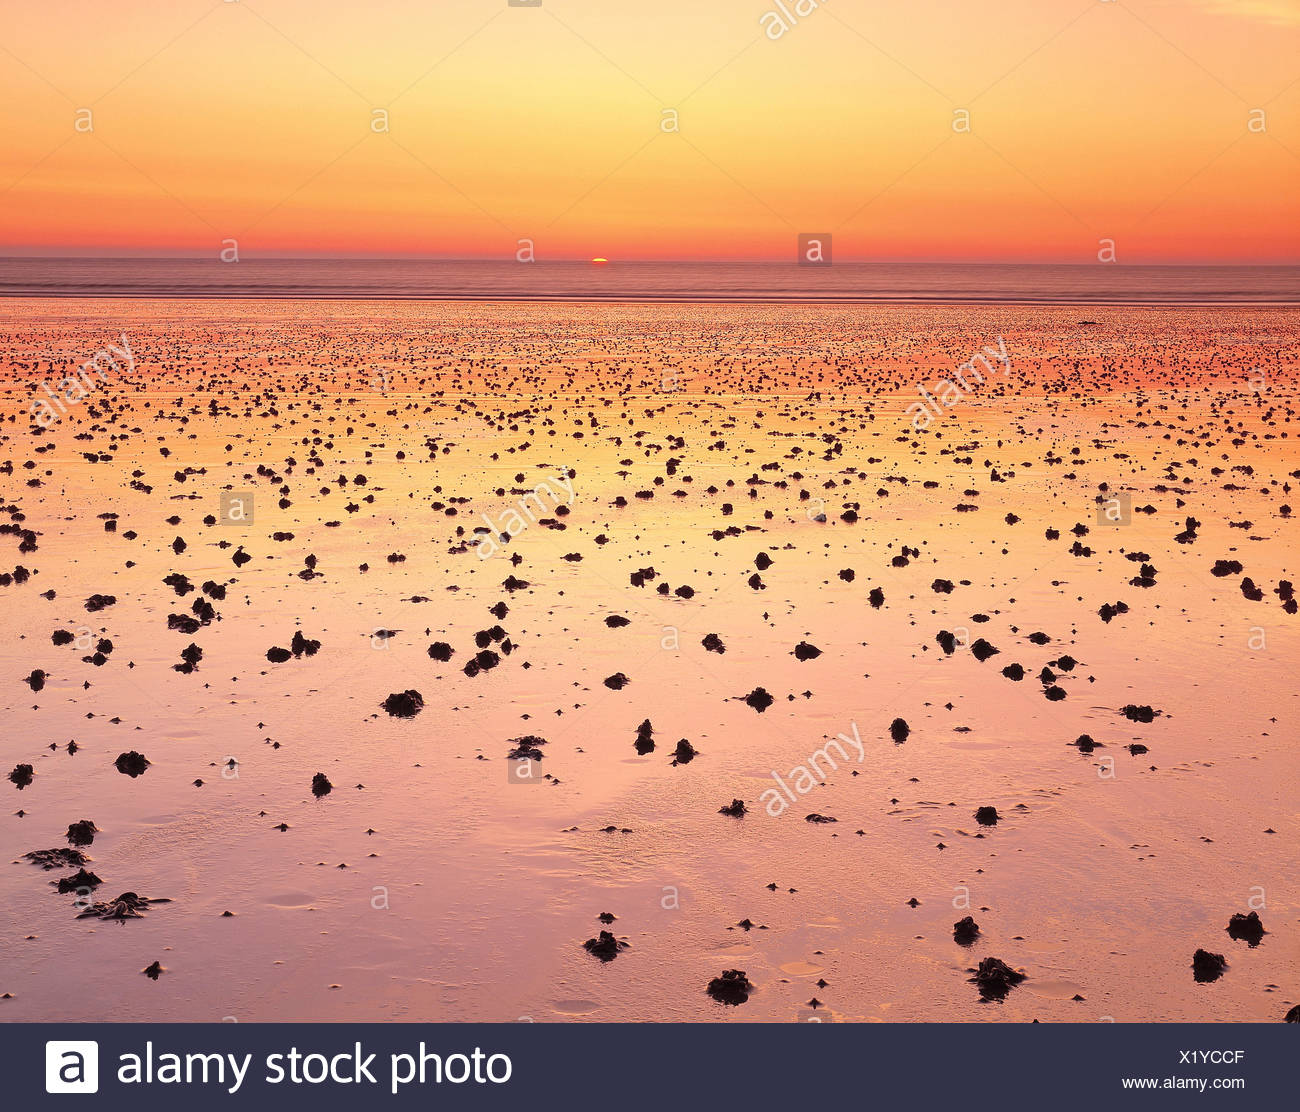 Channel Islands. Guernsey. Worm turnings on beach at sunset. - Stock Image